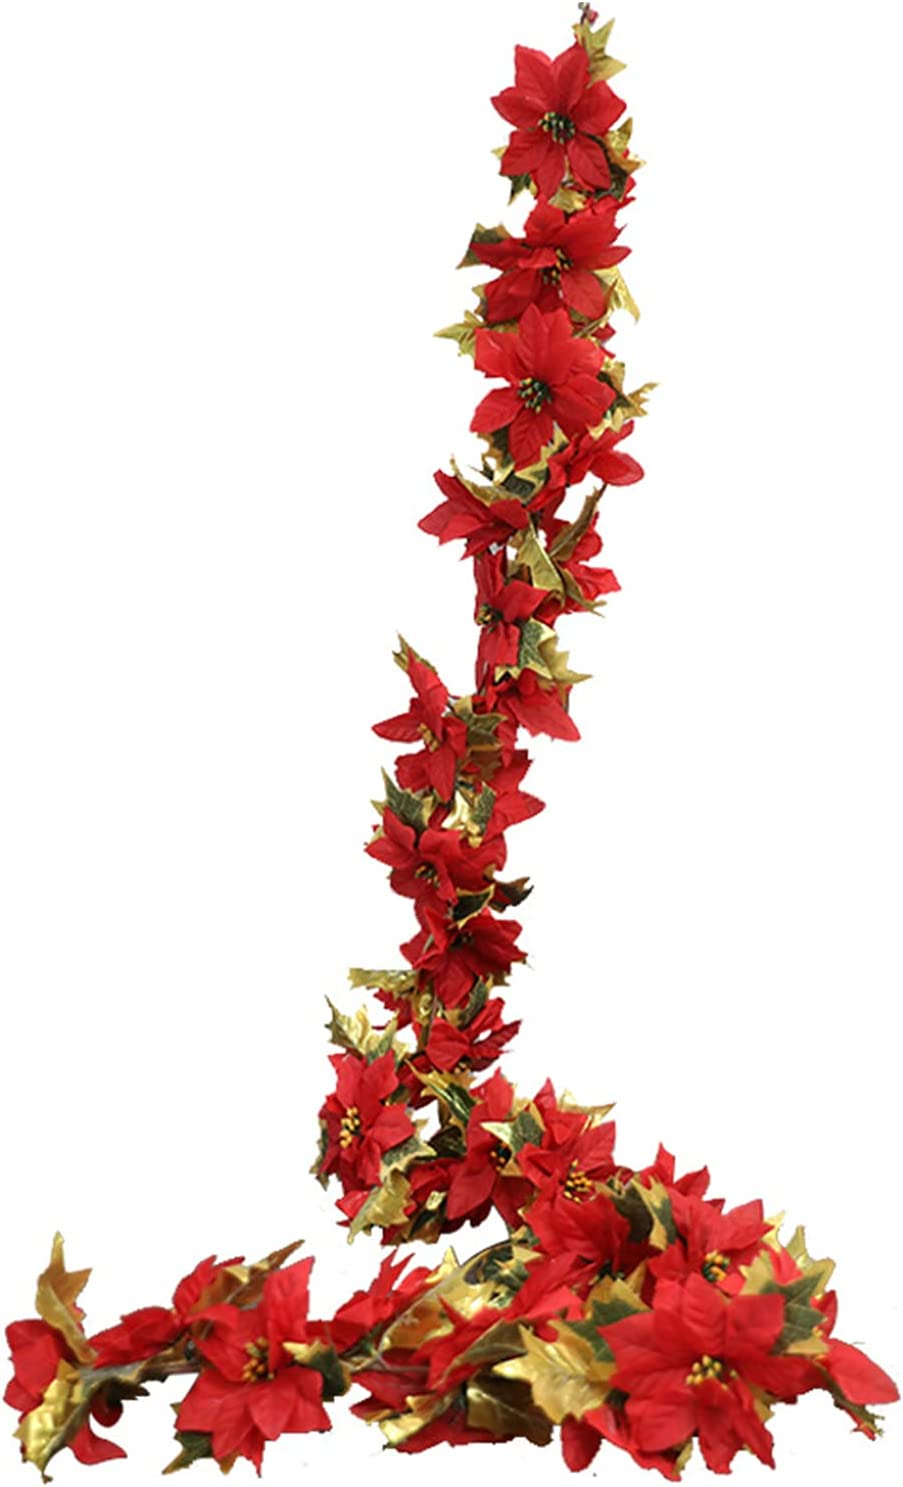 Financial sales sale æ— Christmas Poinsettia Swag Flower with 25% OFF Floral